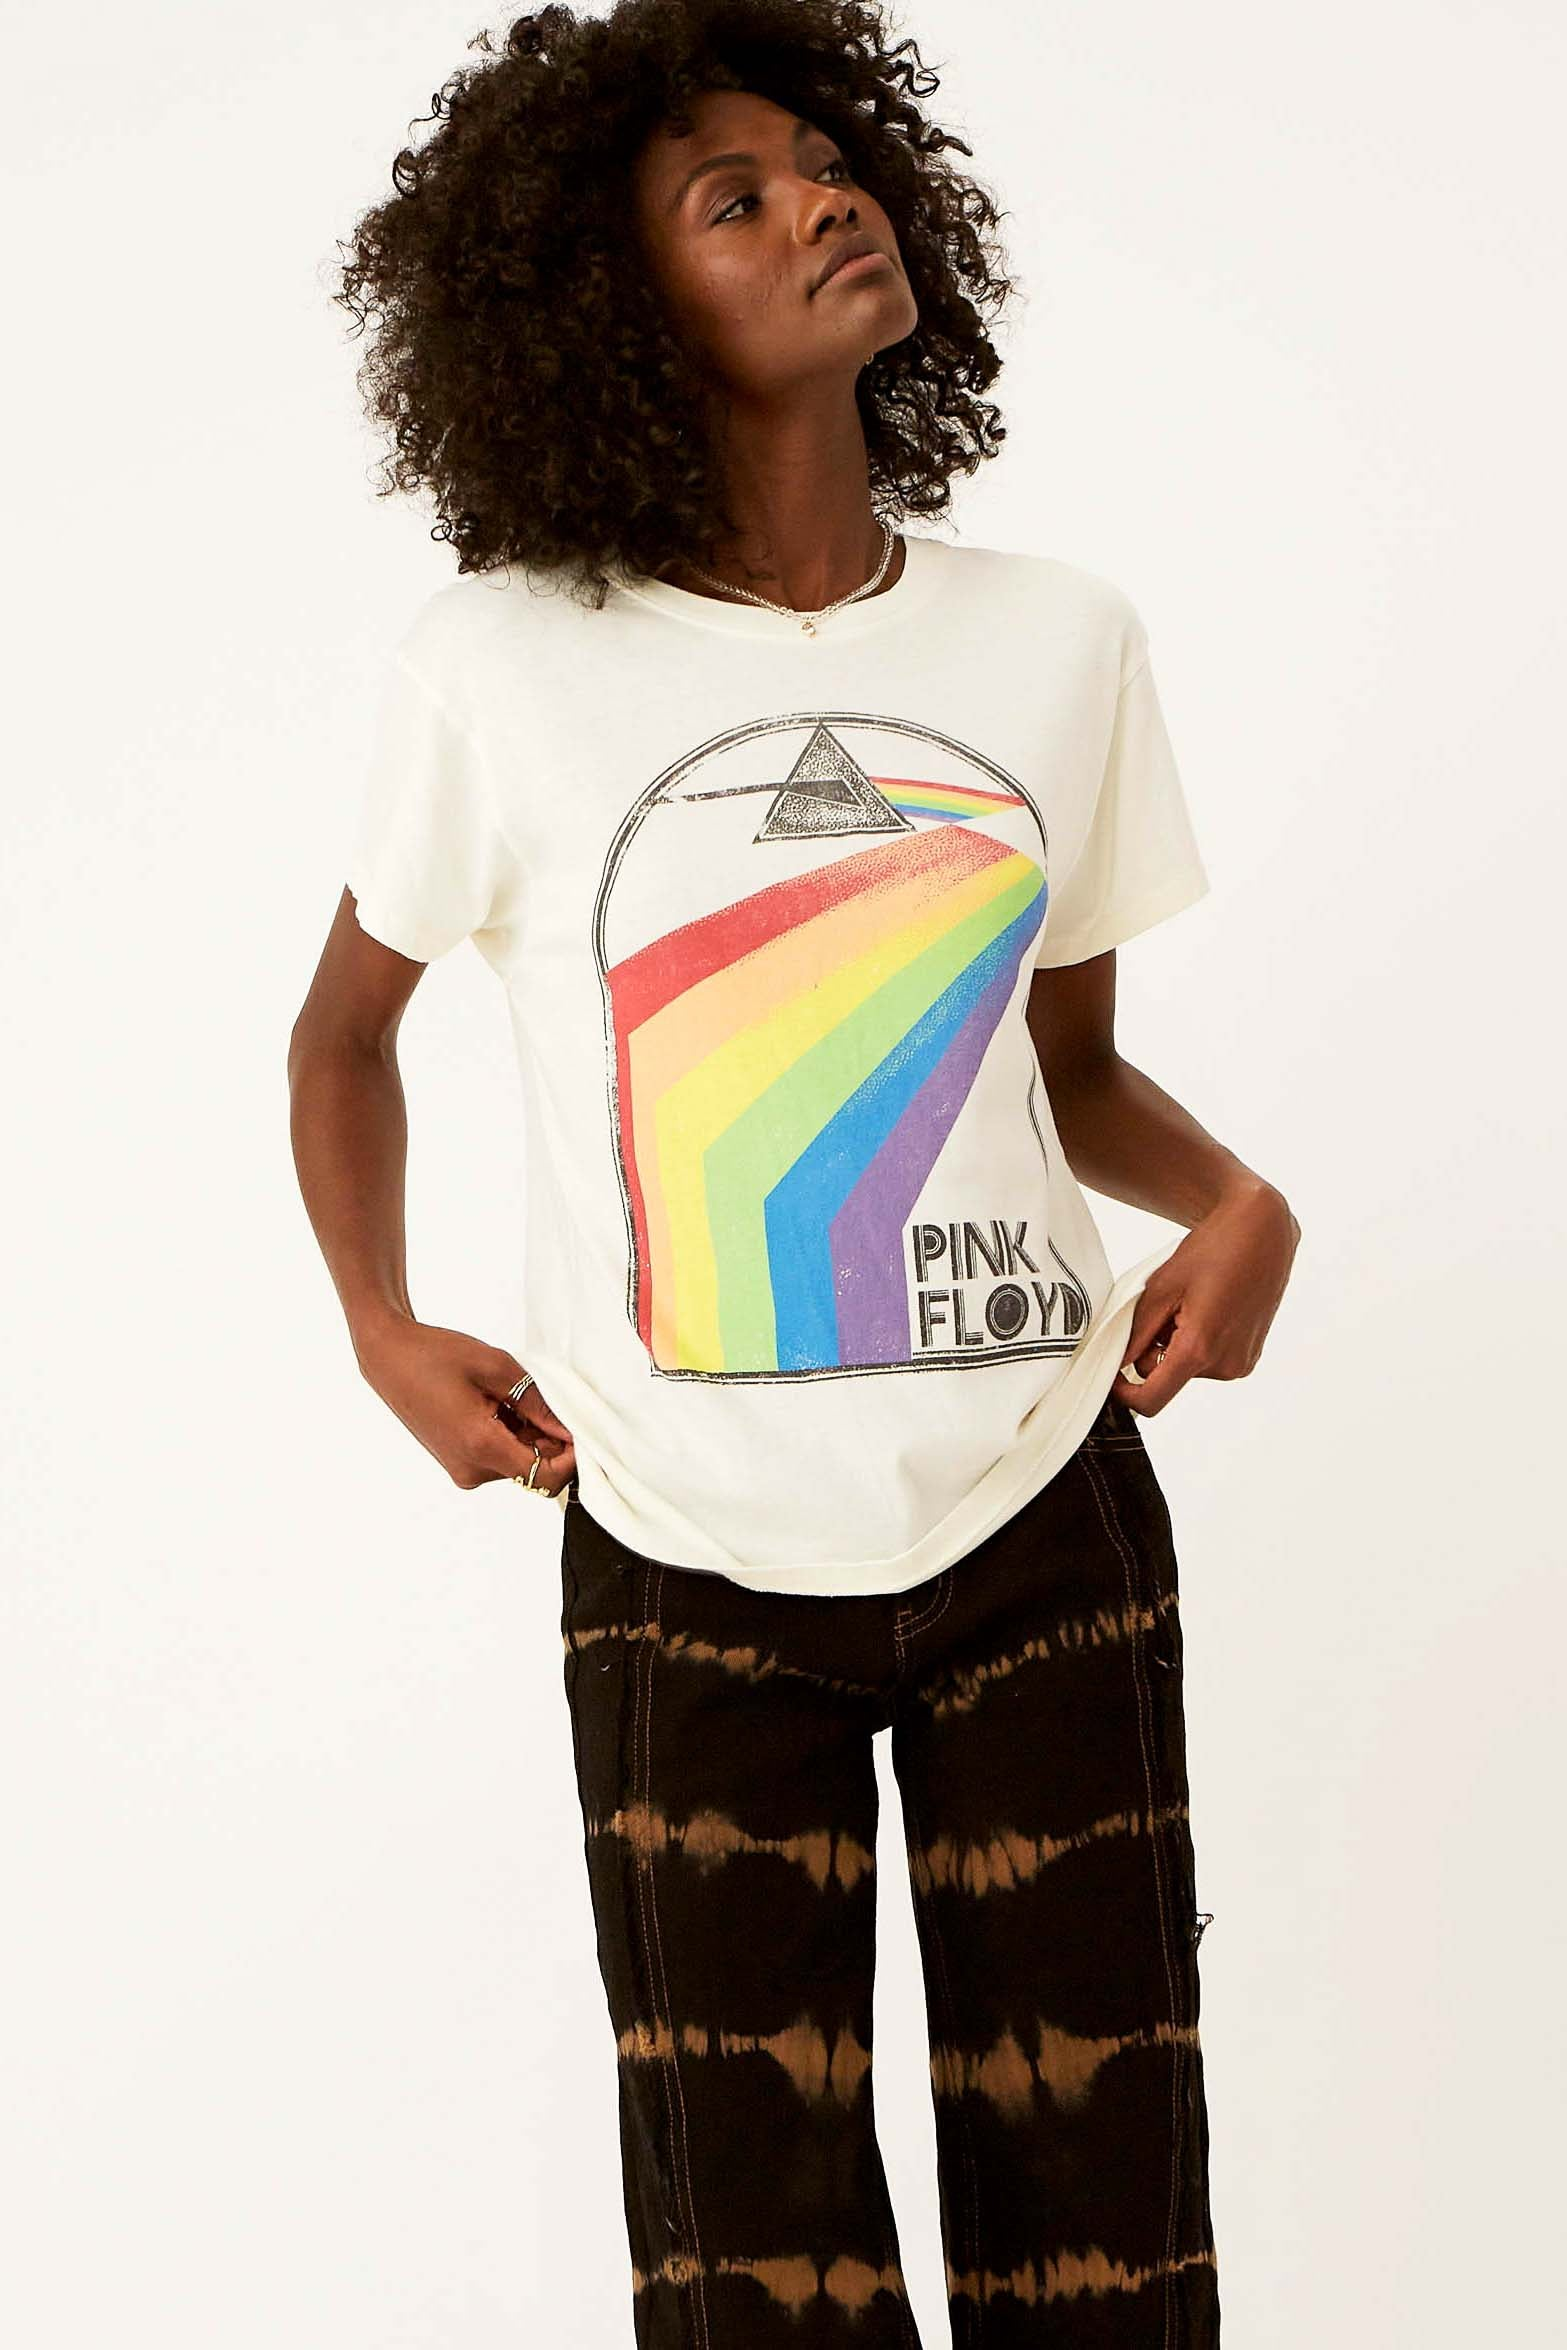 Pink Floyd Retro Rainbow Tour Tee - The Canyon